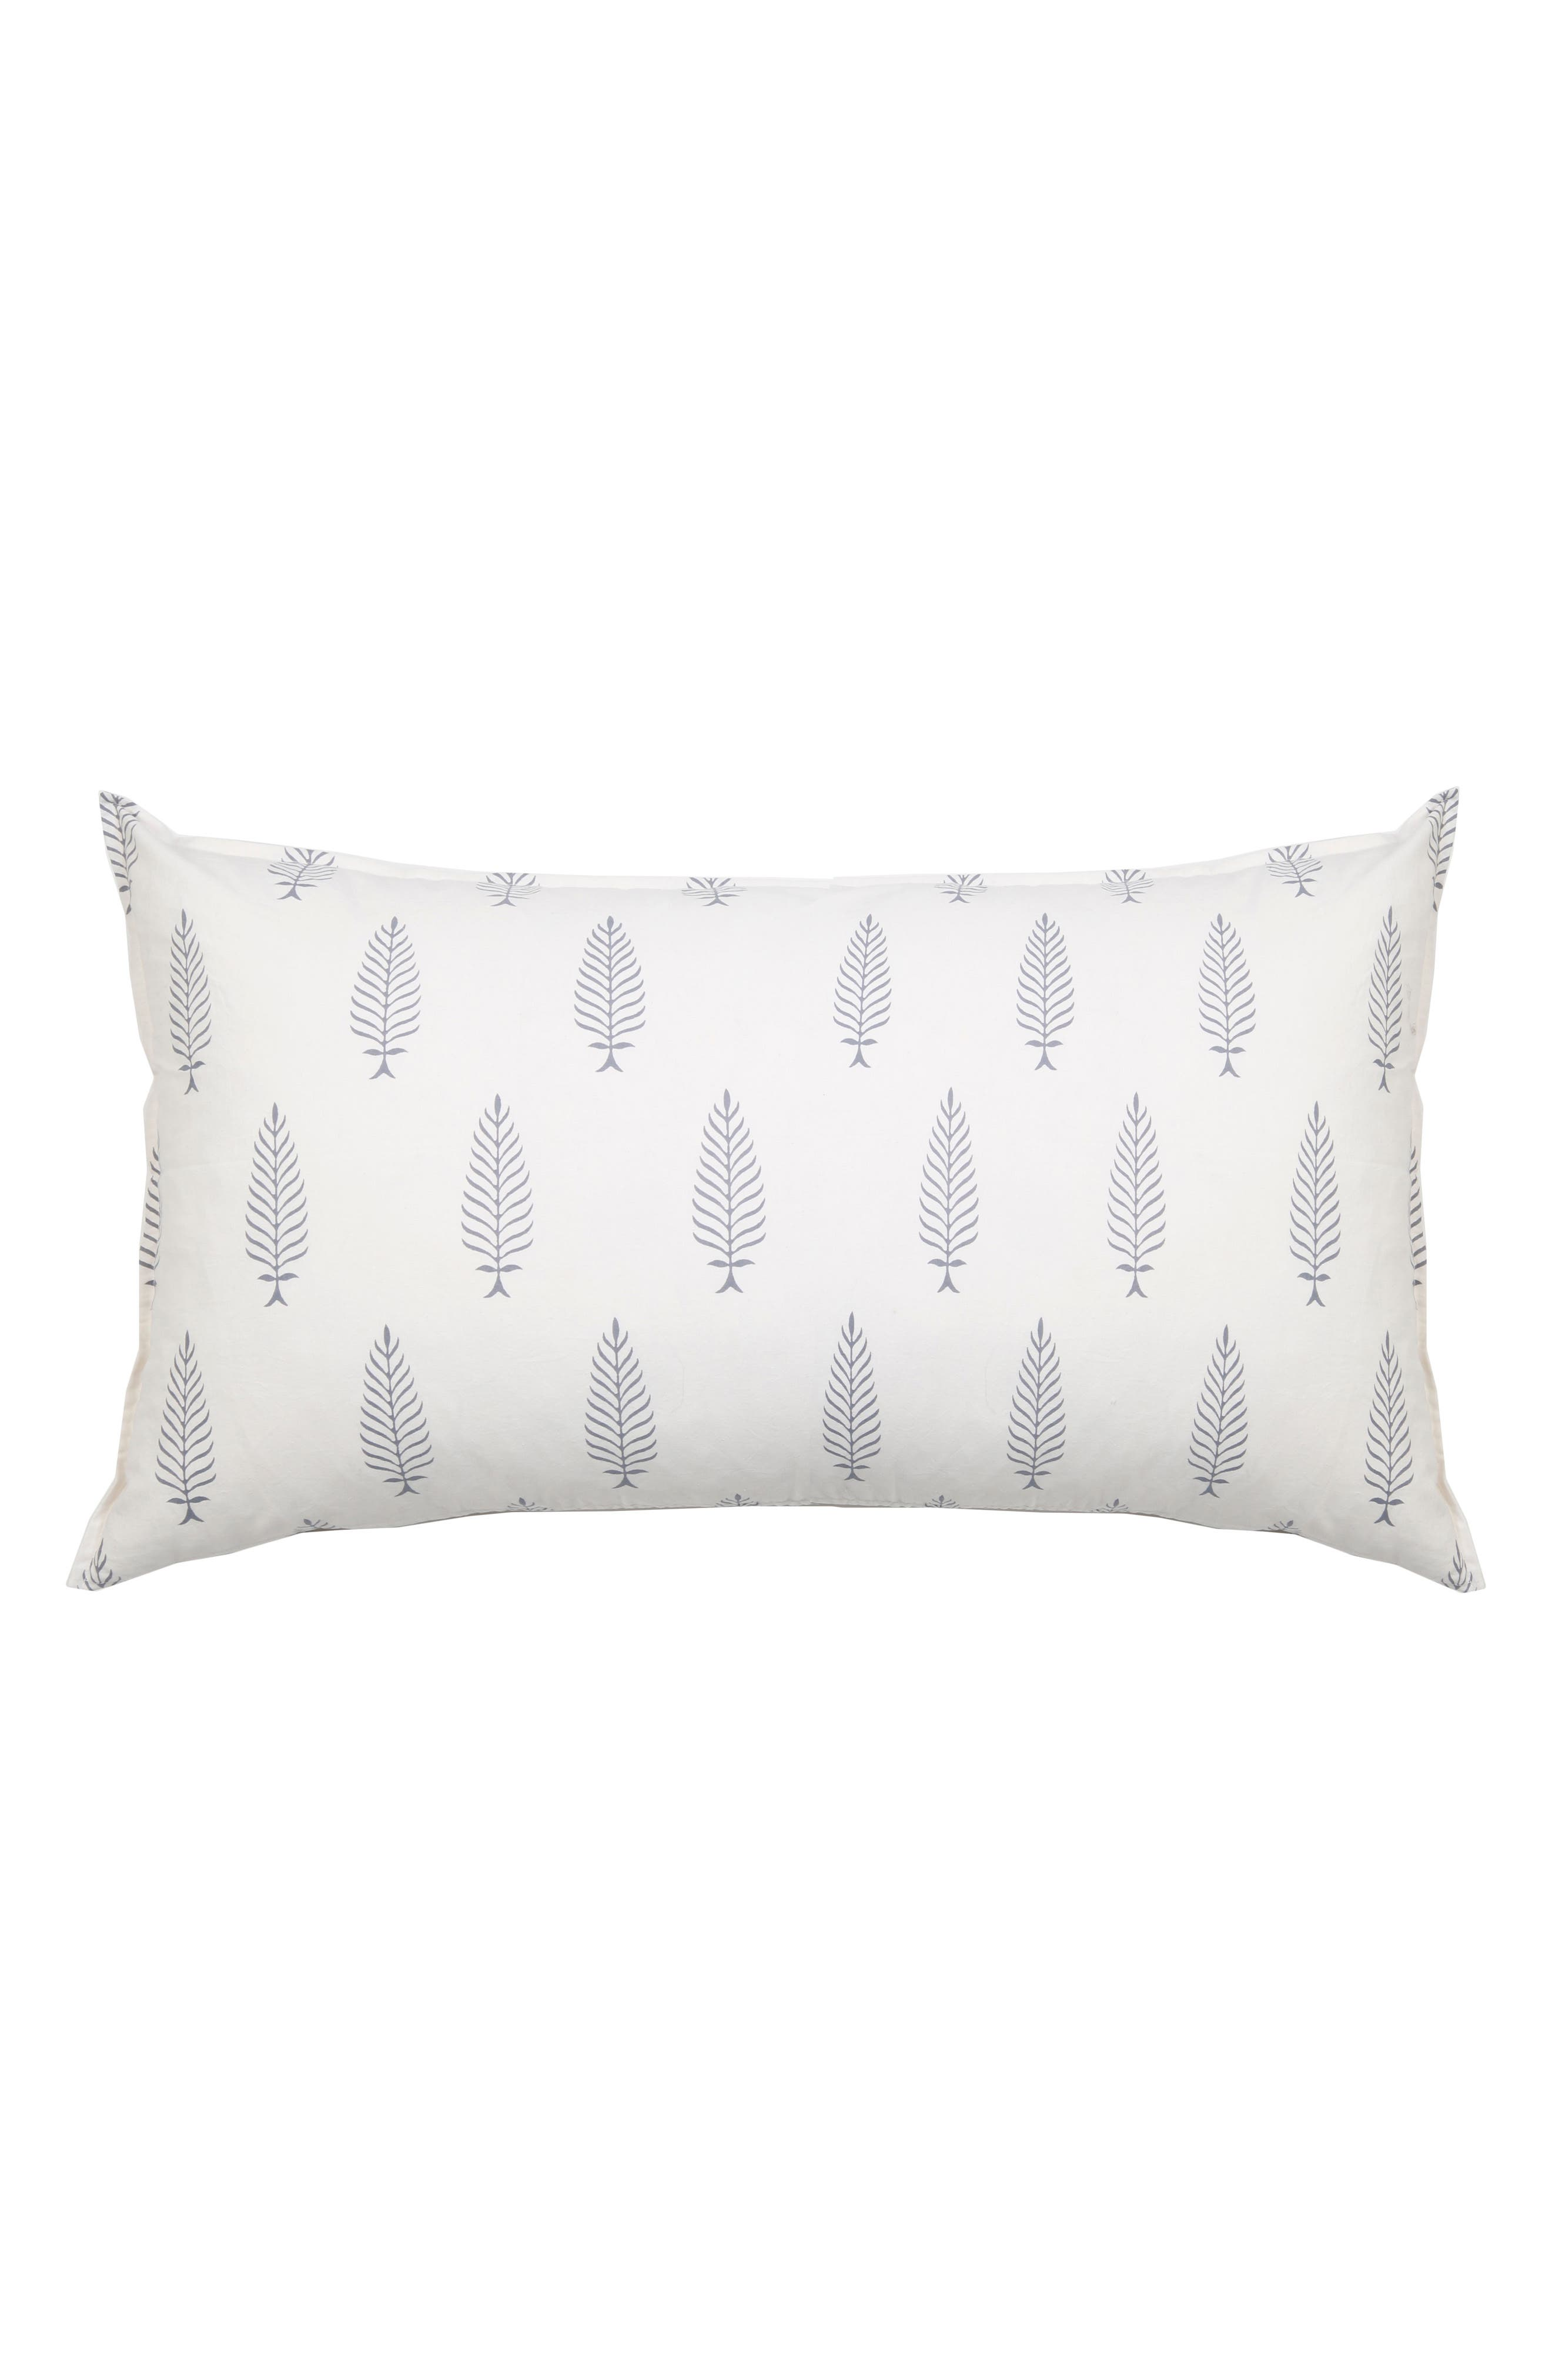 Alternate Image 1 Selected - Pom Pom at Home Kiara Accent Pillow